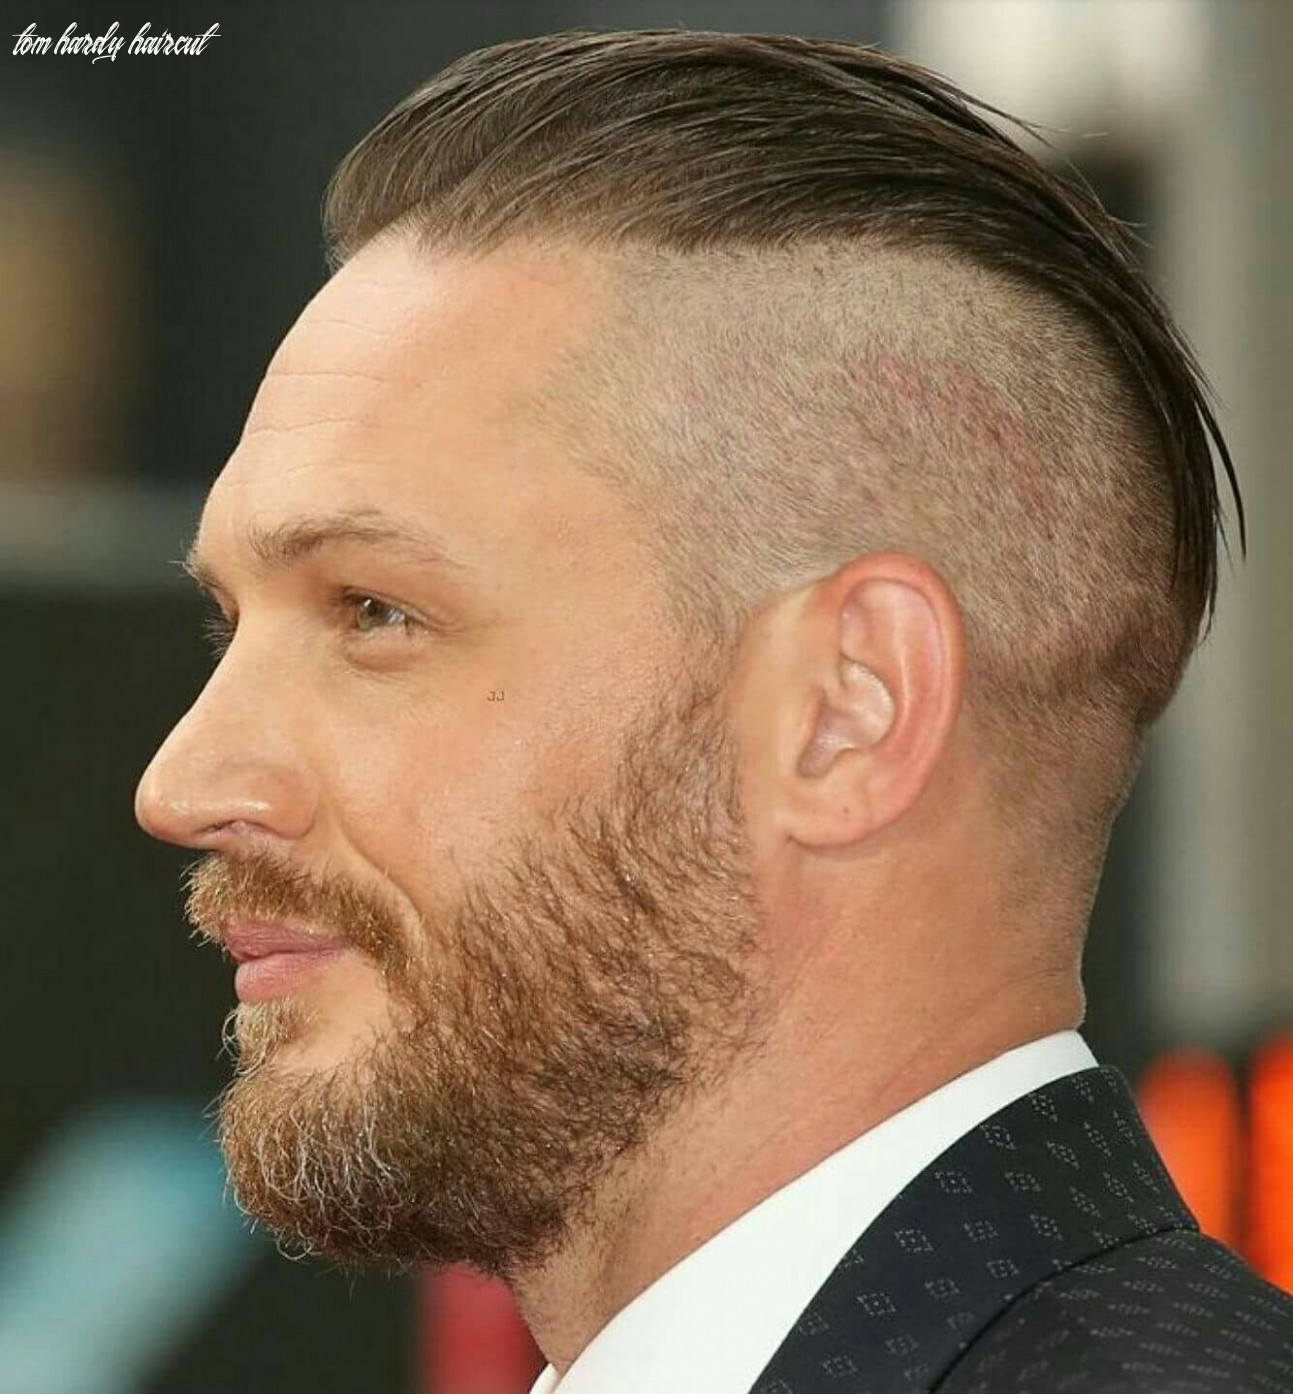 Lovely profile | tom hardy haircut, tom hardy dunkirk, tom hardy tom hardy haircut